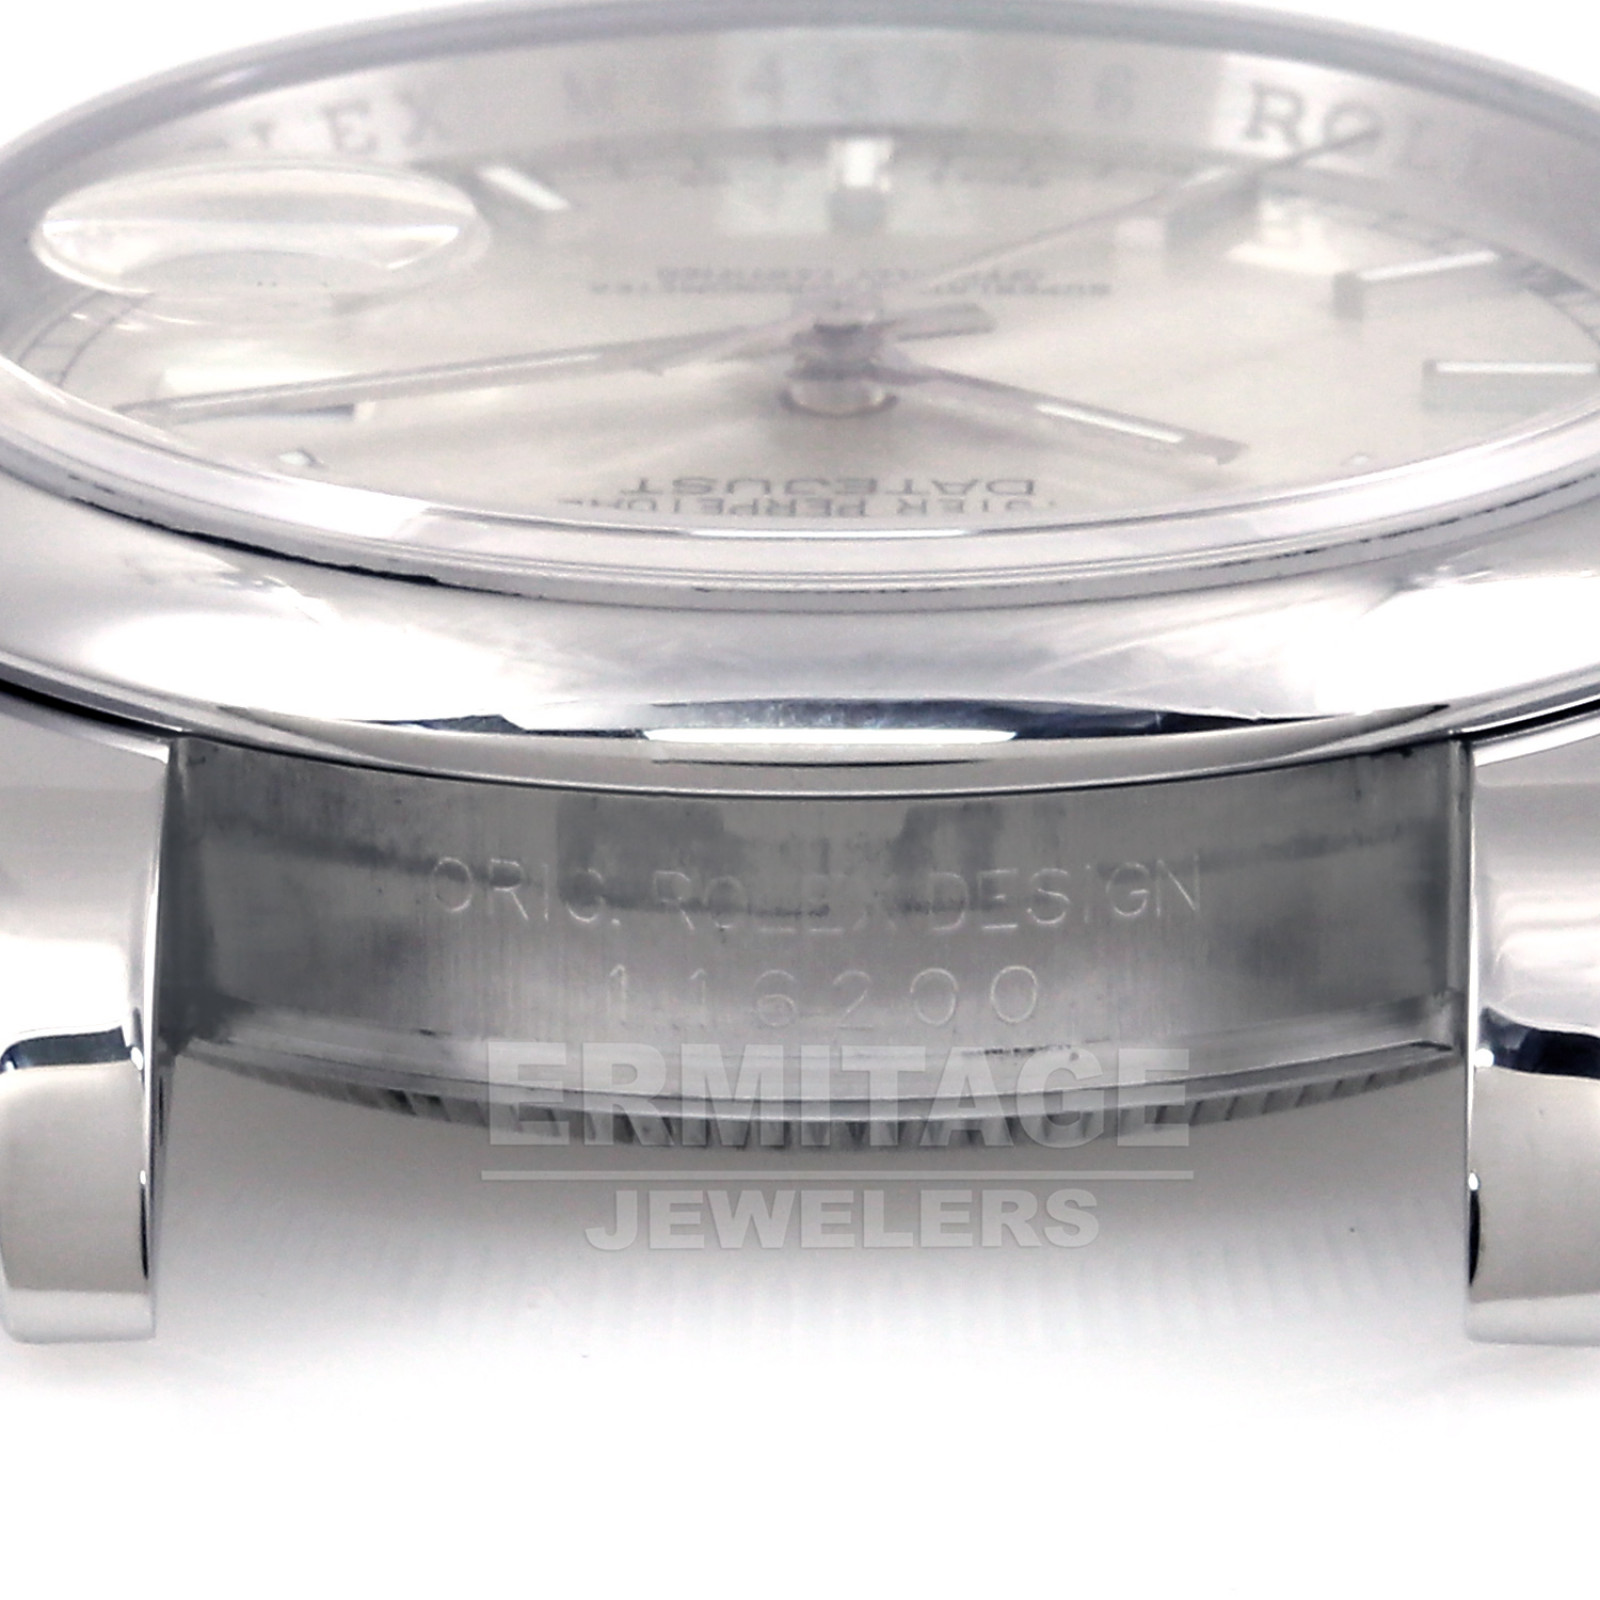 Pre-Owned Rolex Datejust 116200